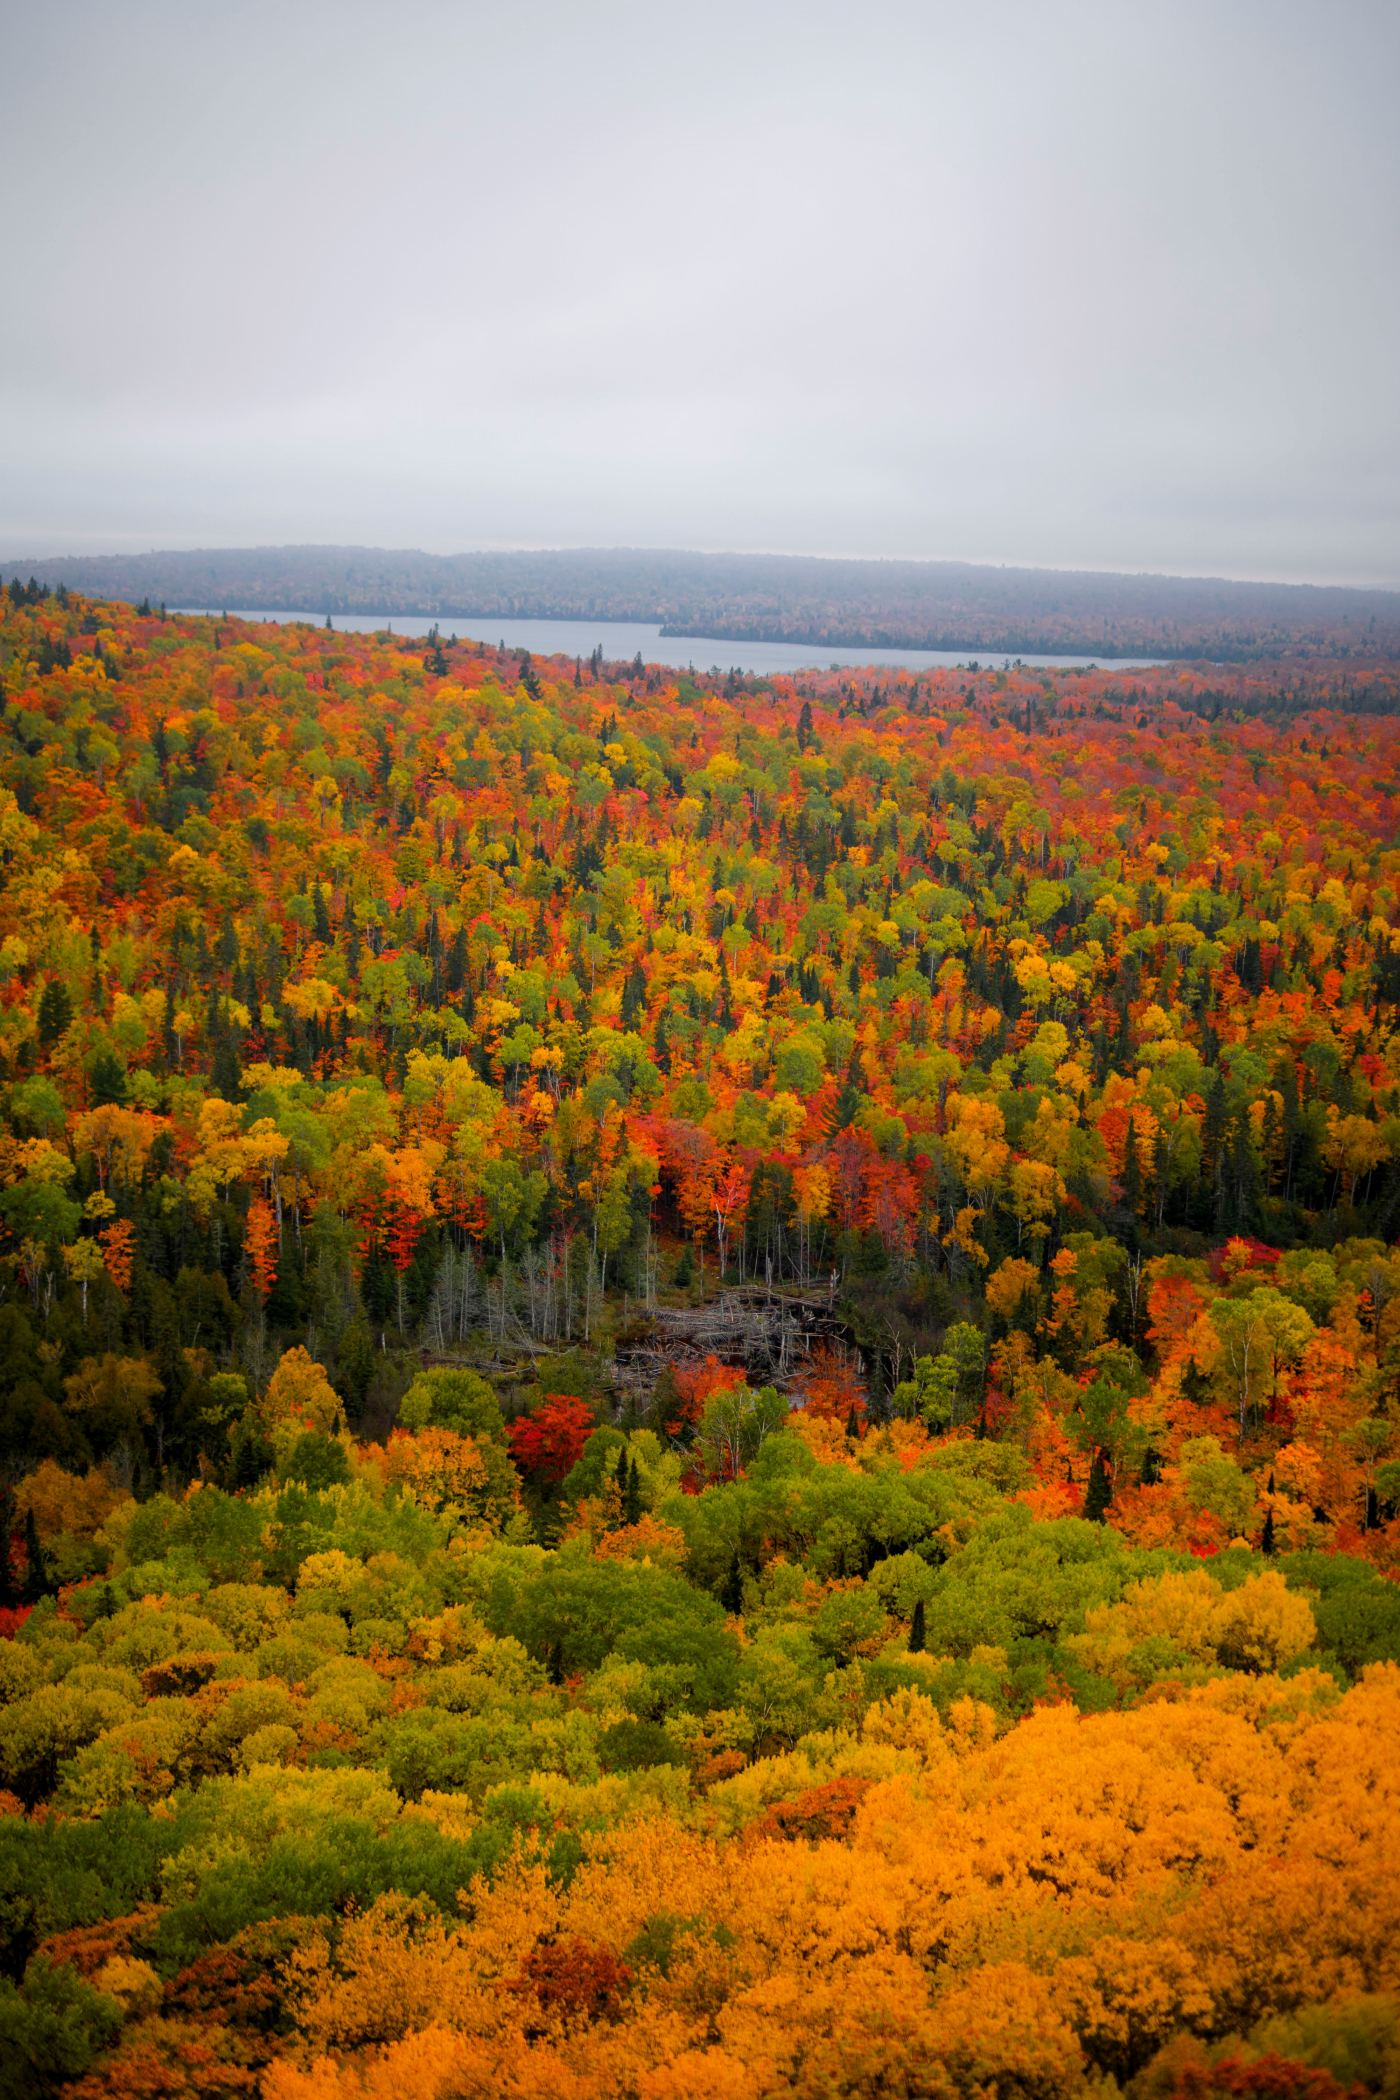 Endless color awaits in these Keweenaw Peninsula fall hot spots